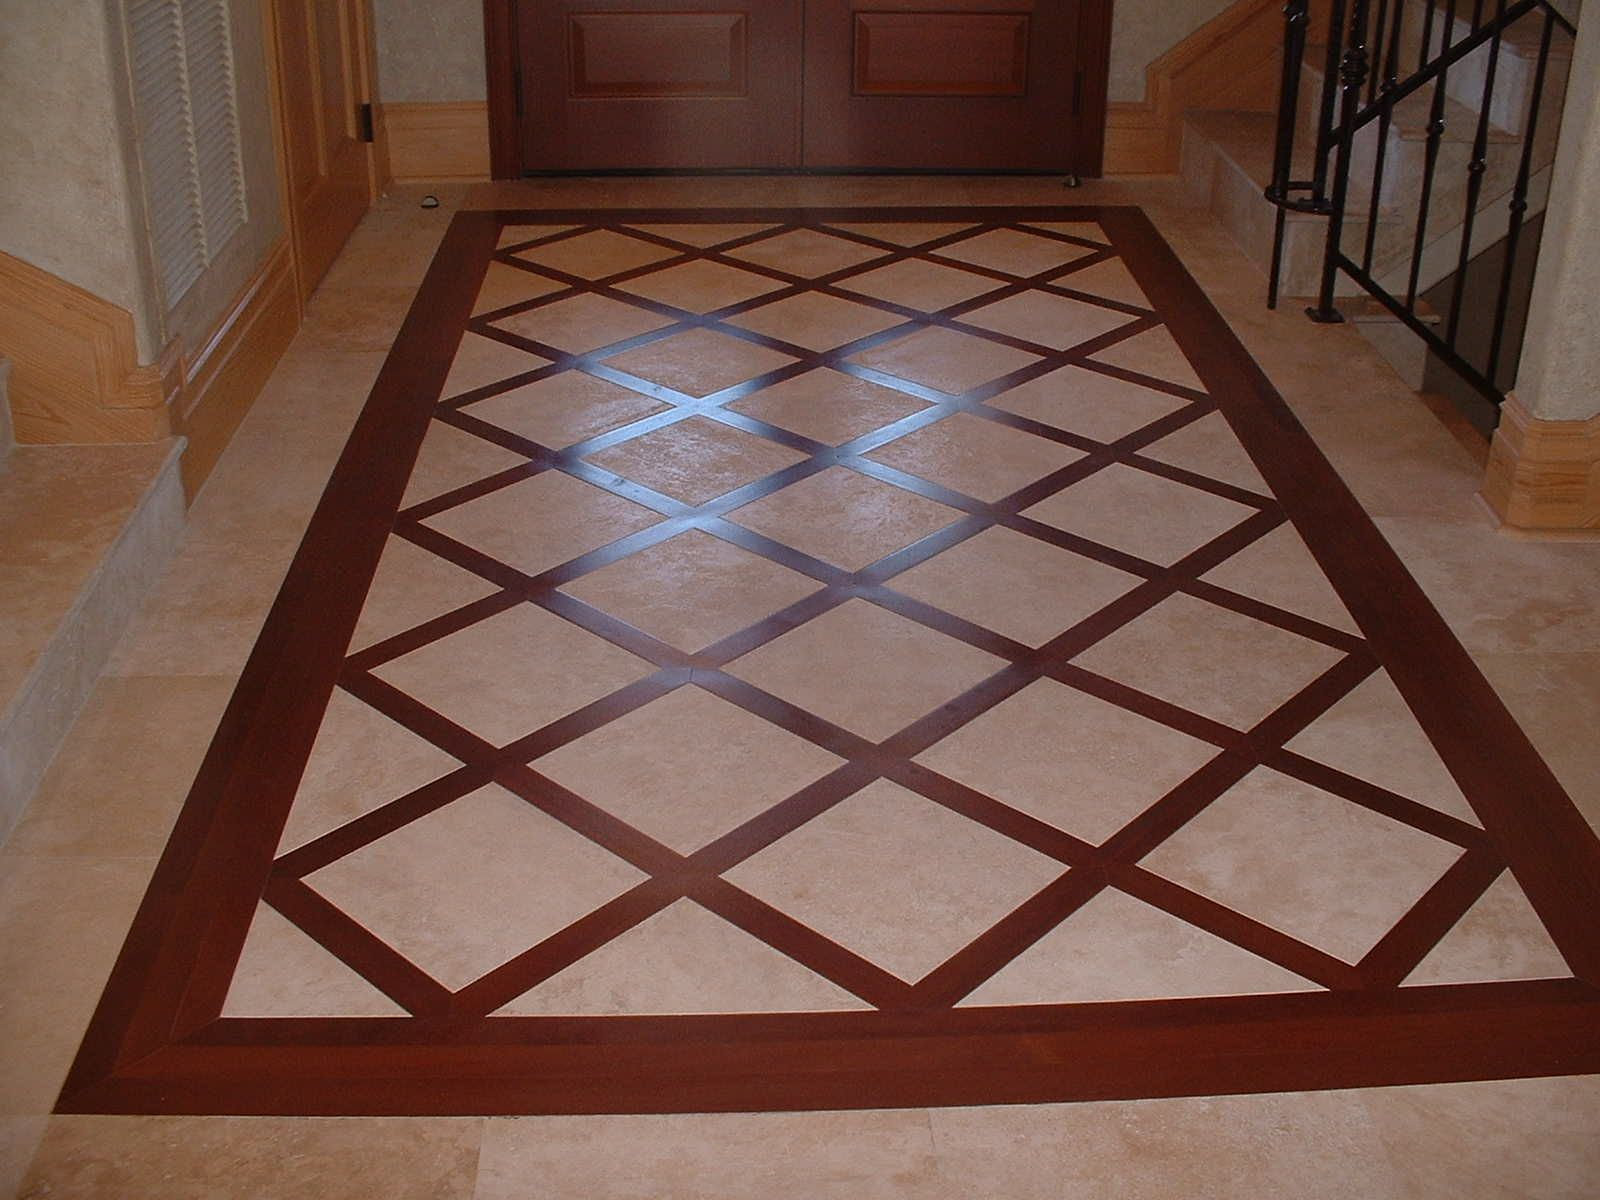 More wood and tile mix floor pinterest for Wood floor medallions inlay designs